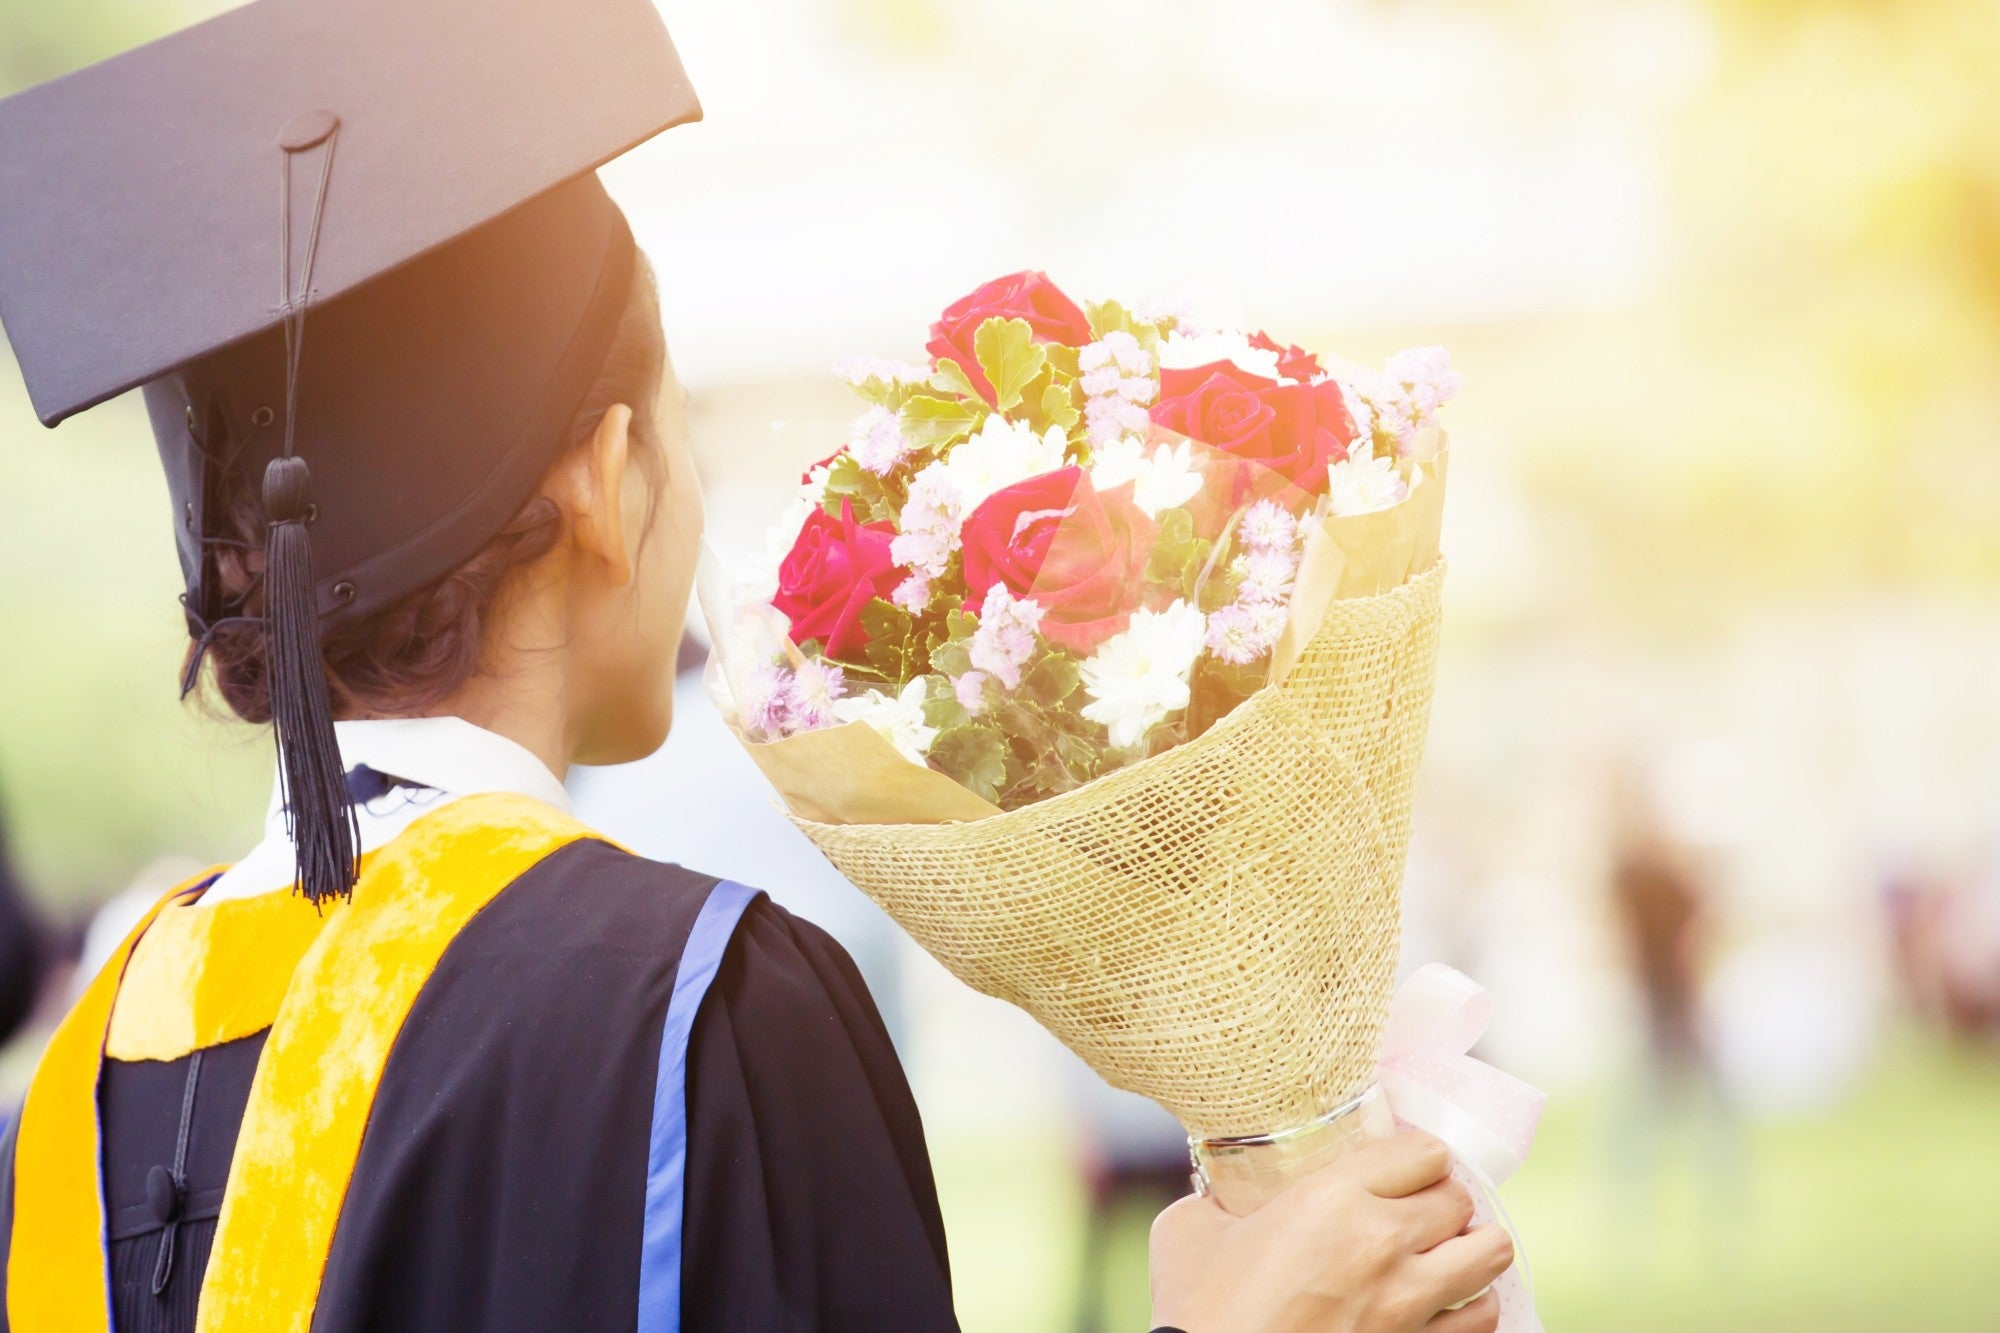 The Best High School Graduation Gifts for Her